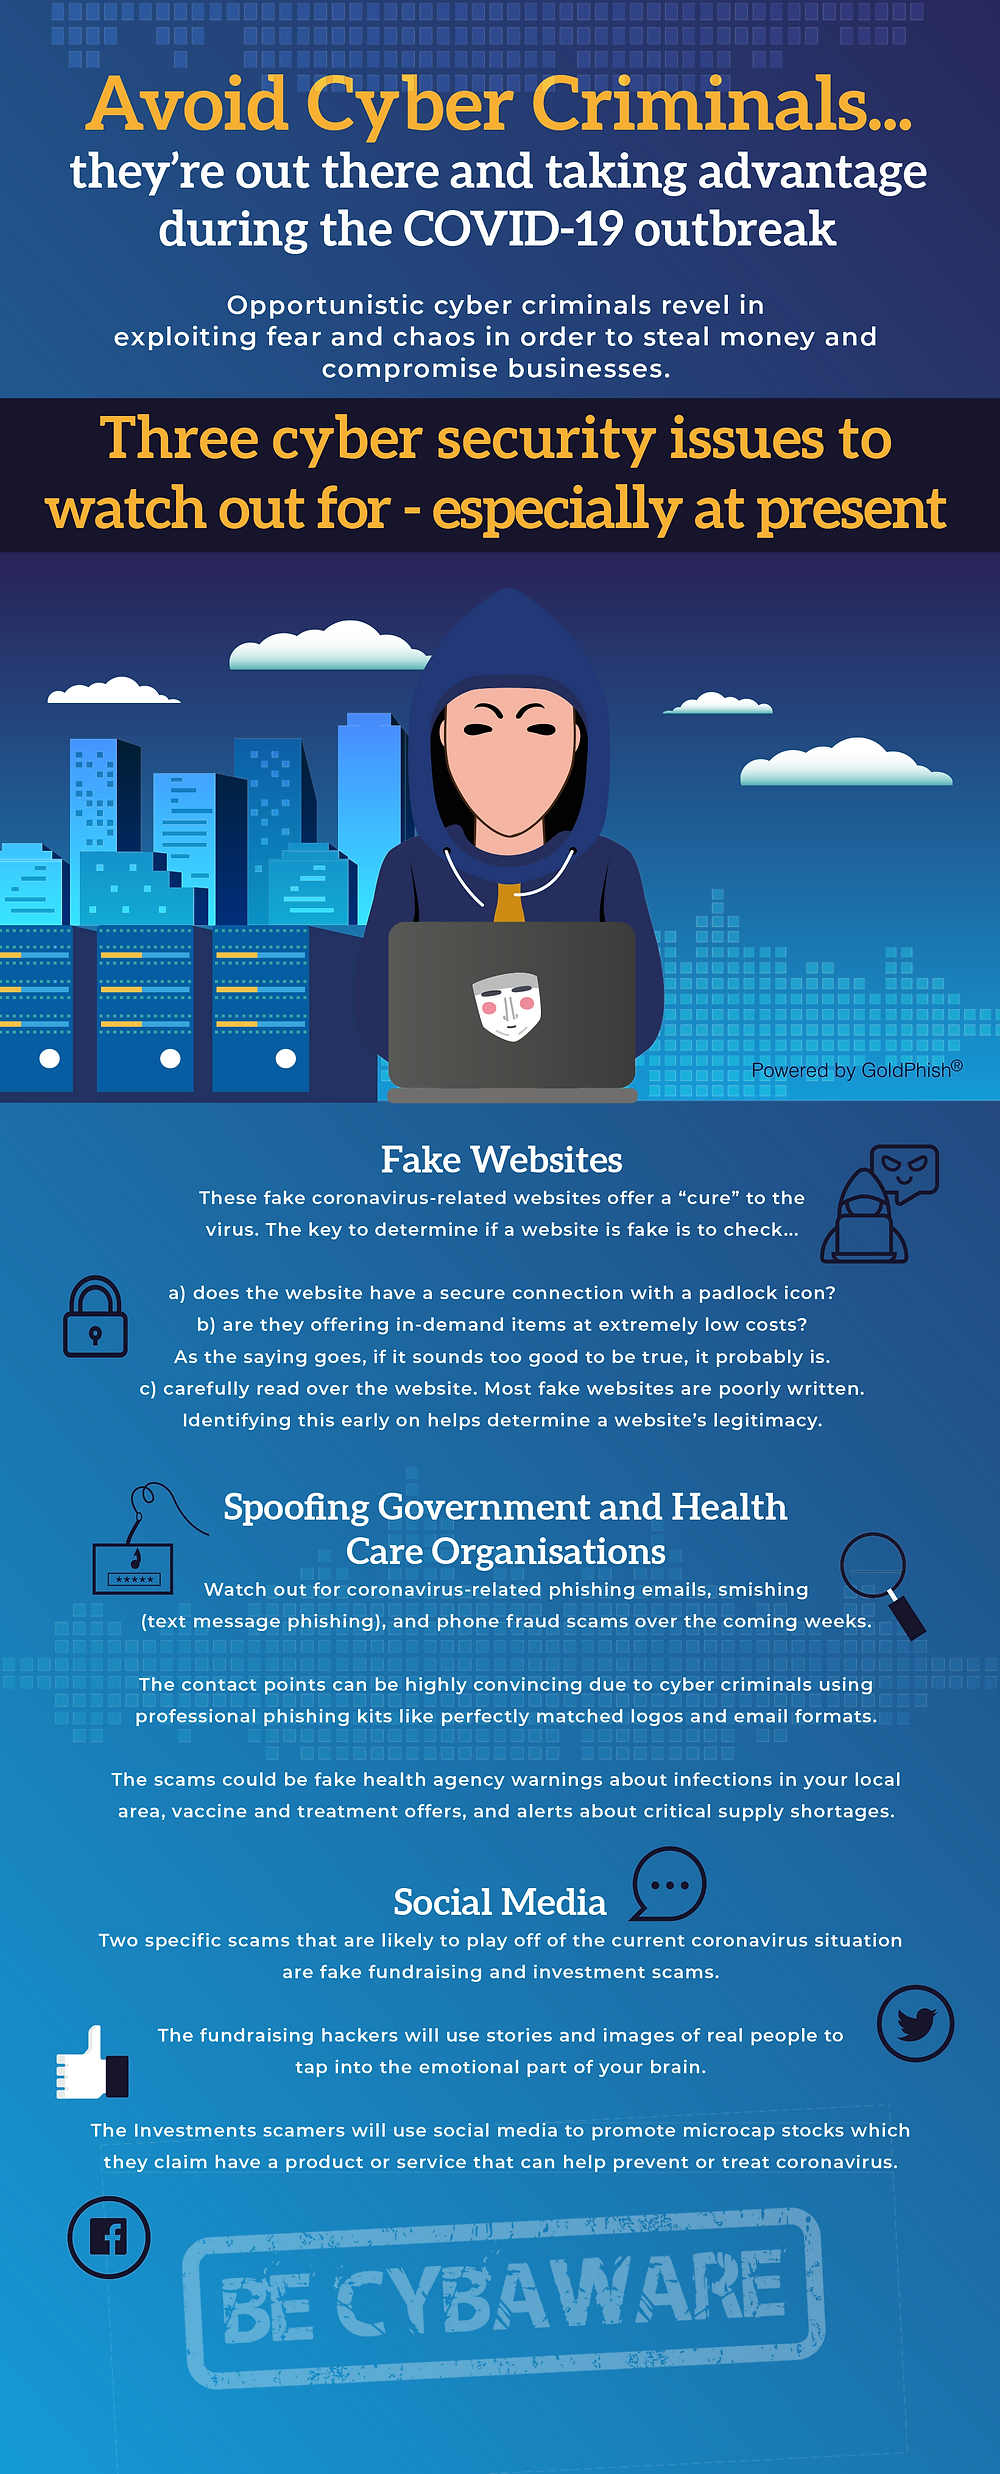 BeCybaware_Infographic Cyber Crime Covid19